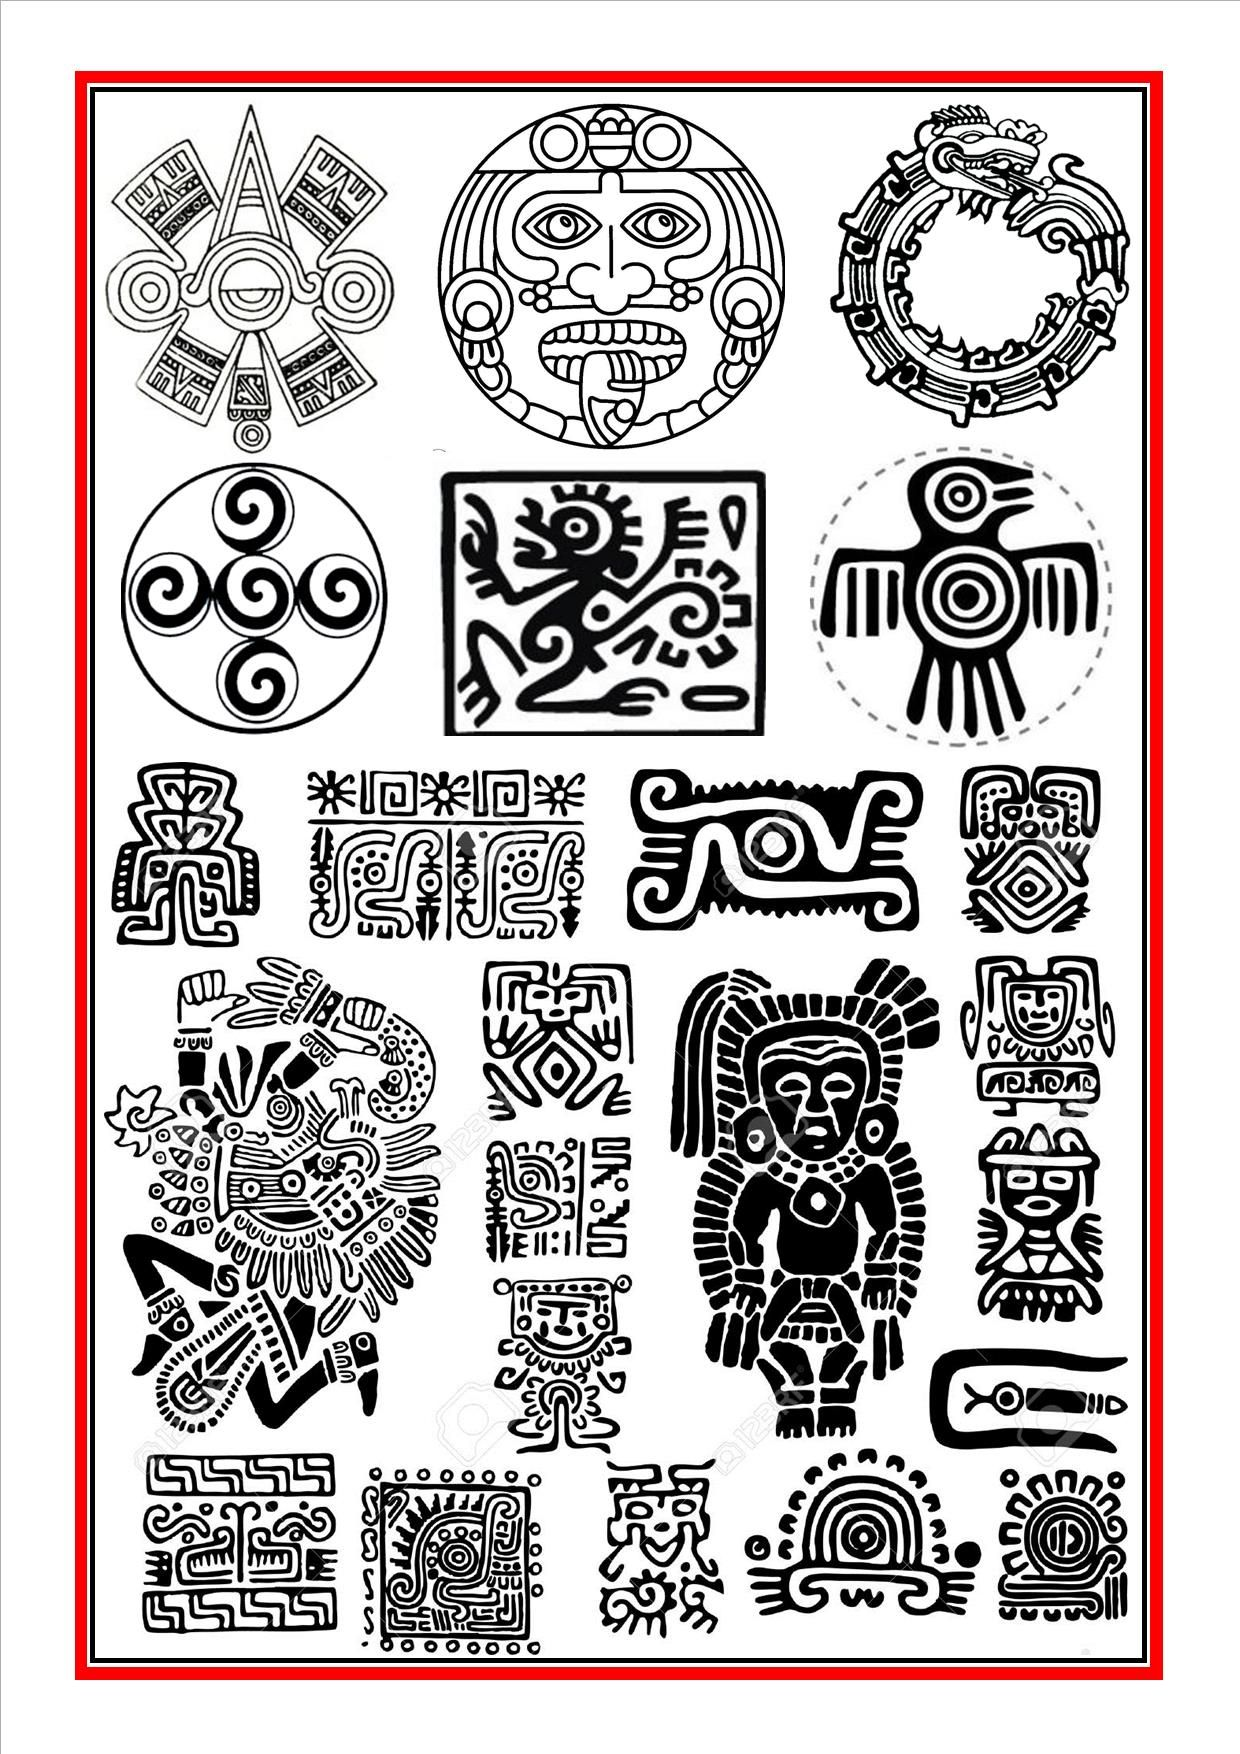 Aztec Symbols 1 Ancient Art In 2018 Pinterest Aztec Symbols